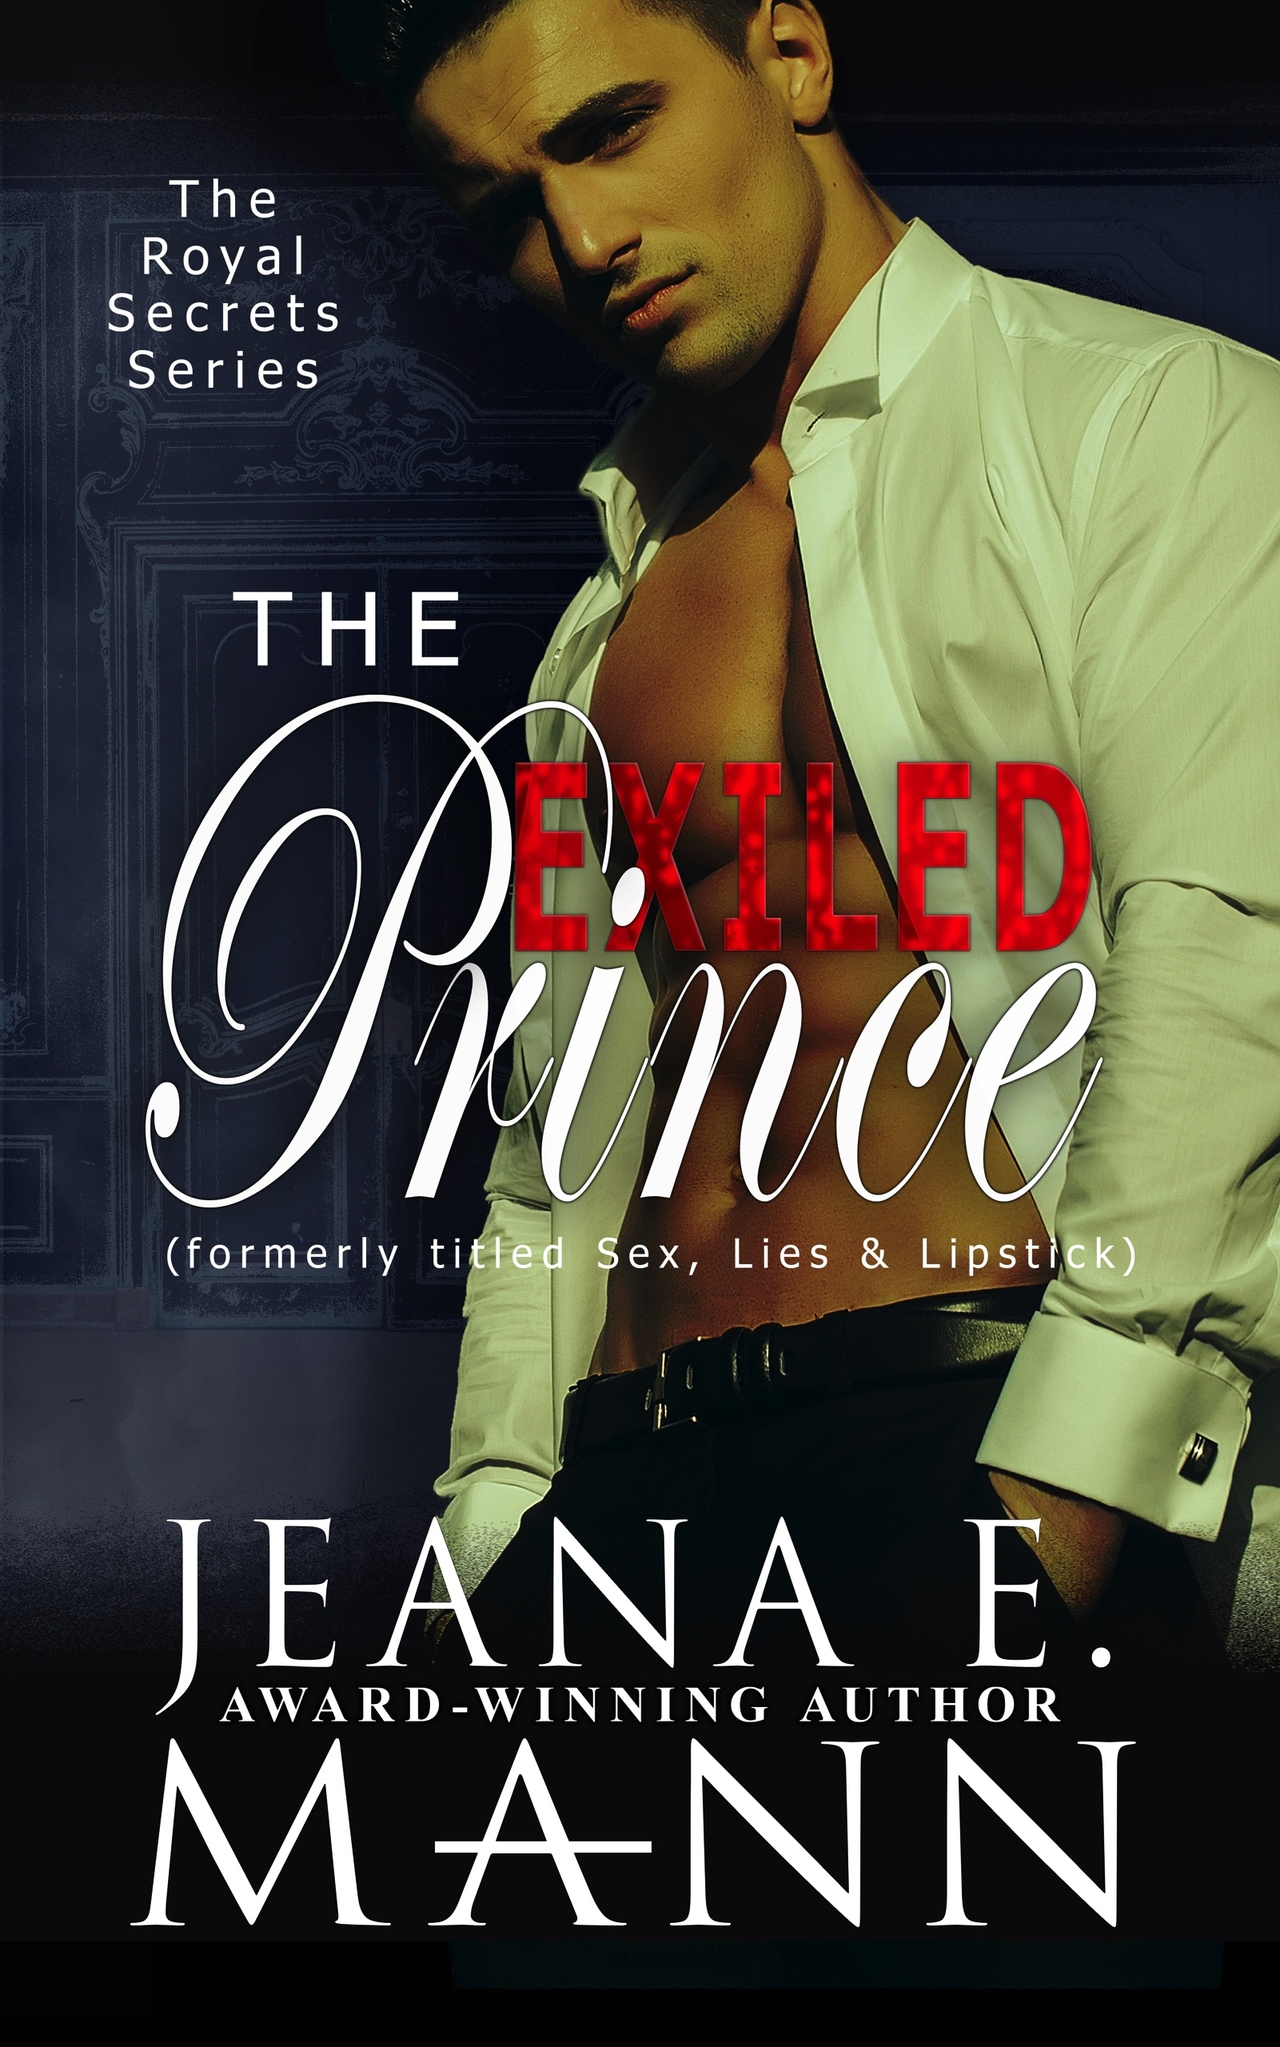 The exiled prince kindle